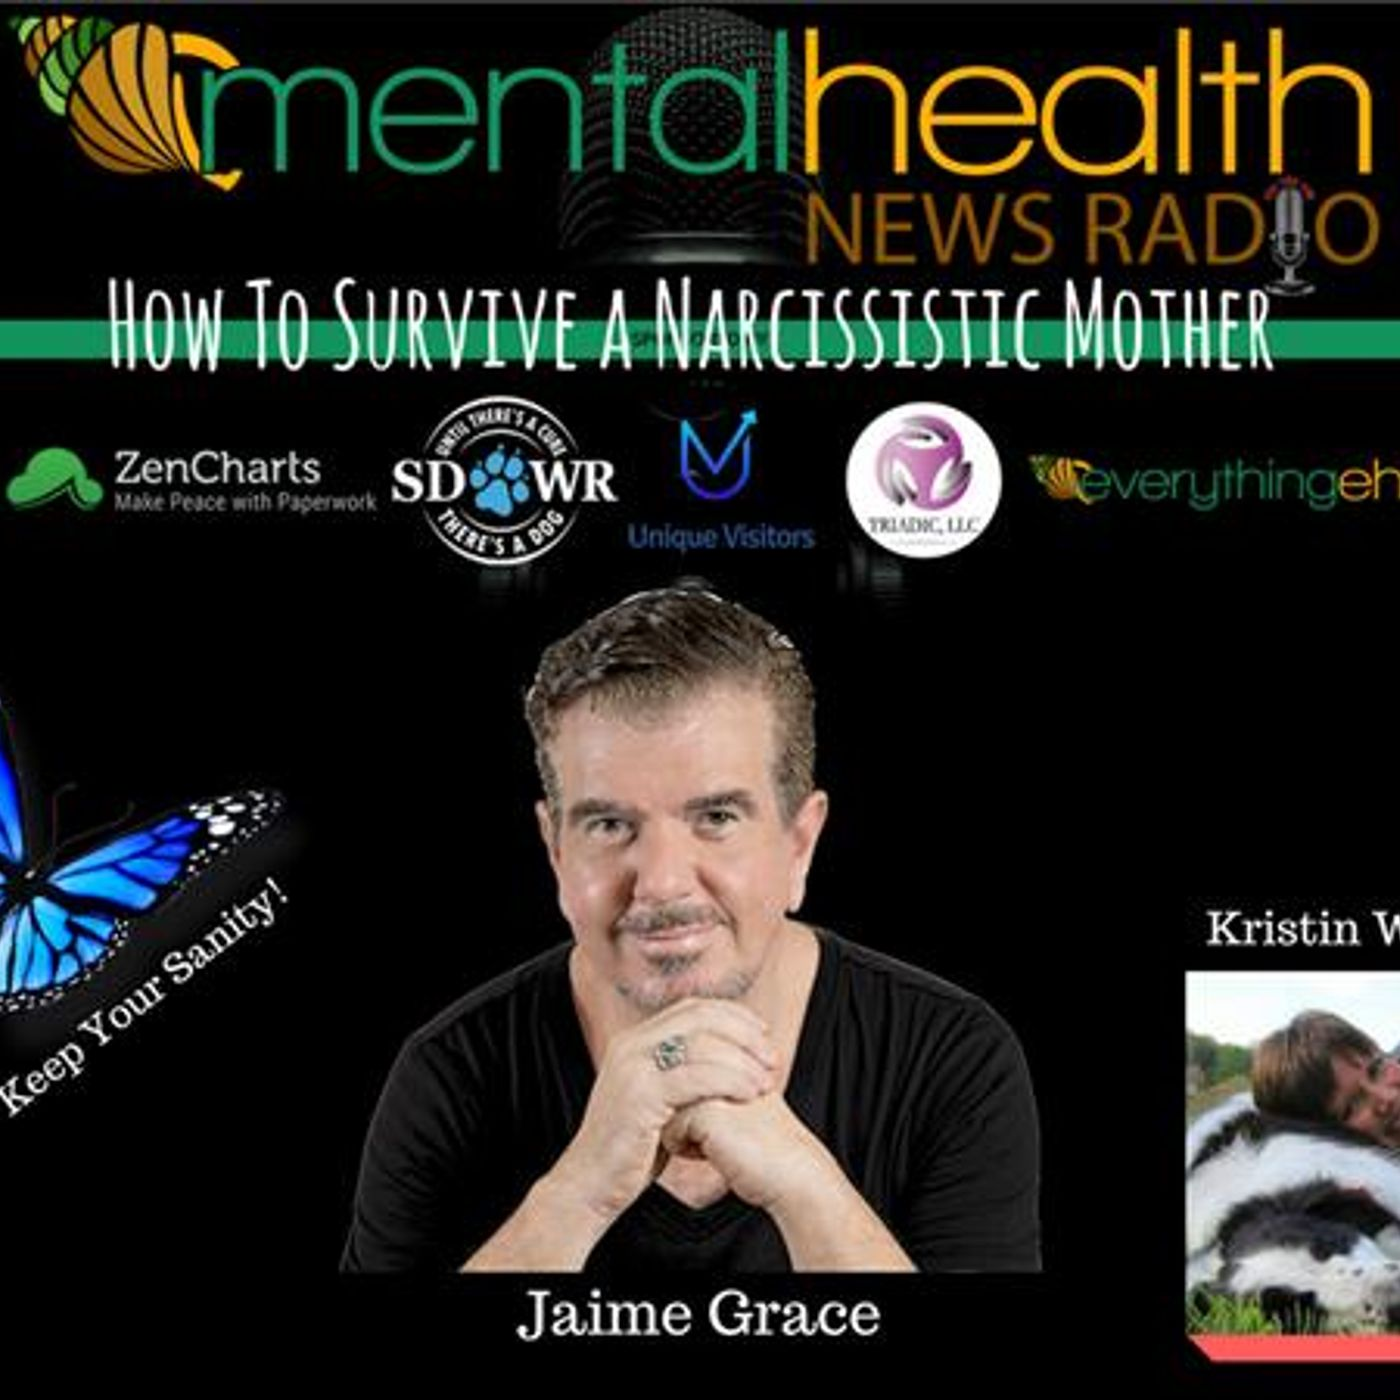 Mental Health News Radio - How To Survive a Narcissistic Mother and Keep Your Sanity: Jaime Grace